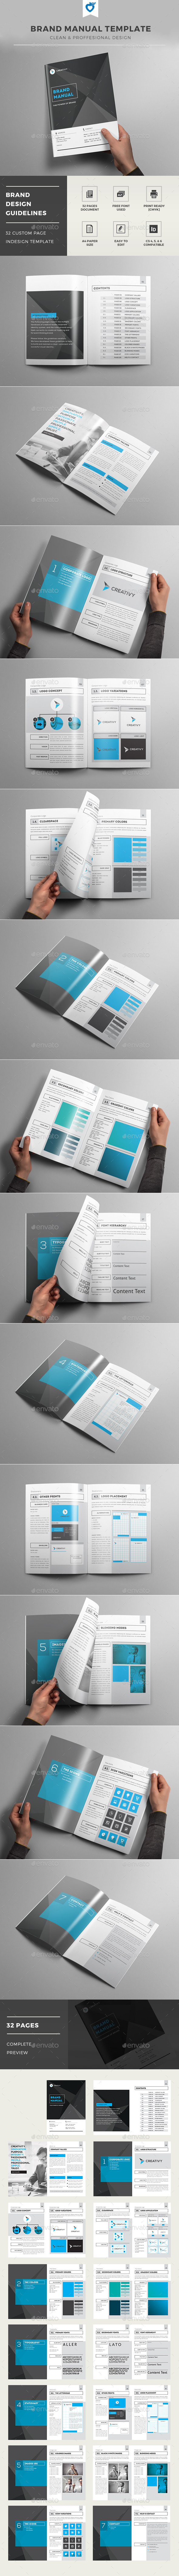 GraphicRiver Brand Manual Template 11937583